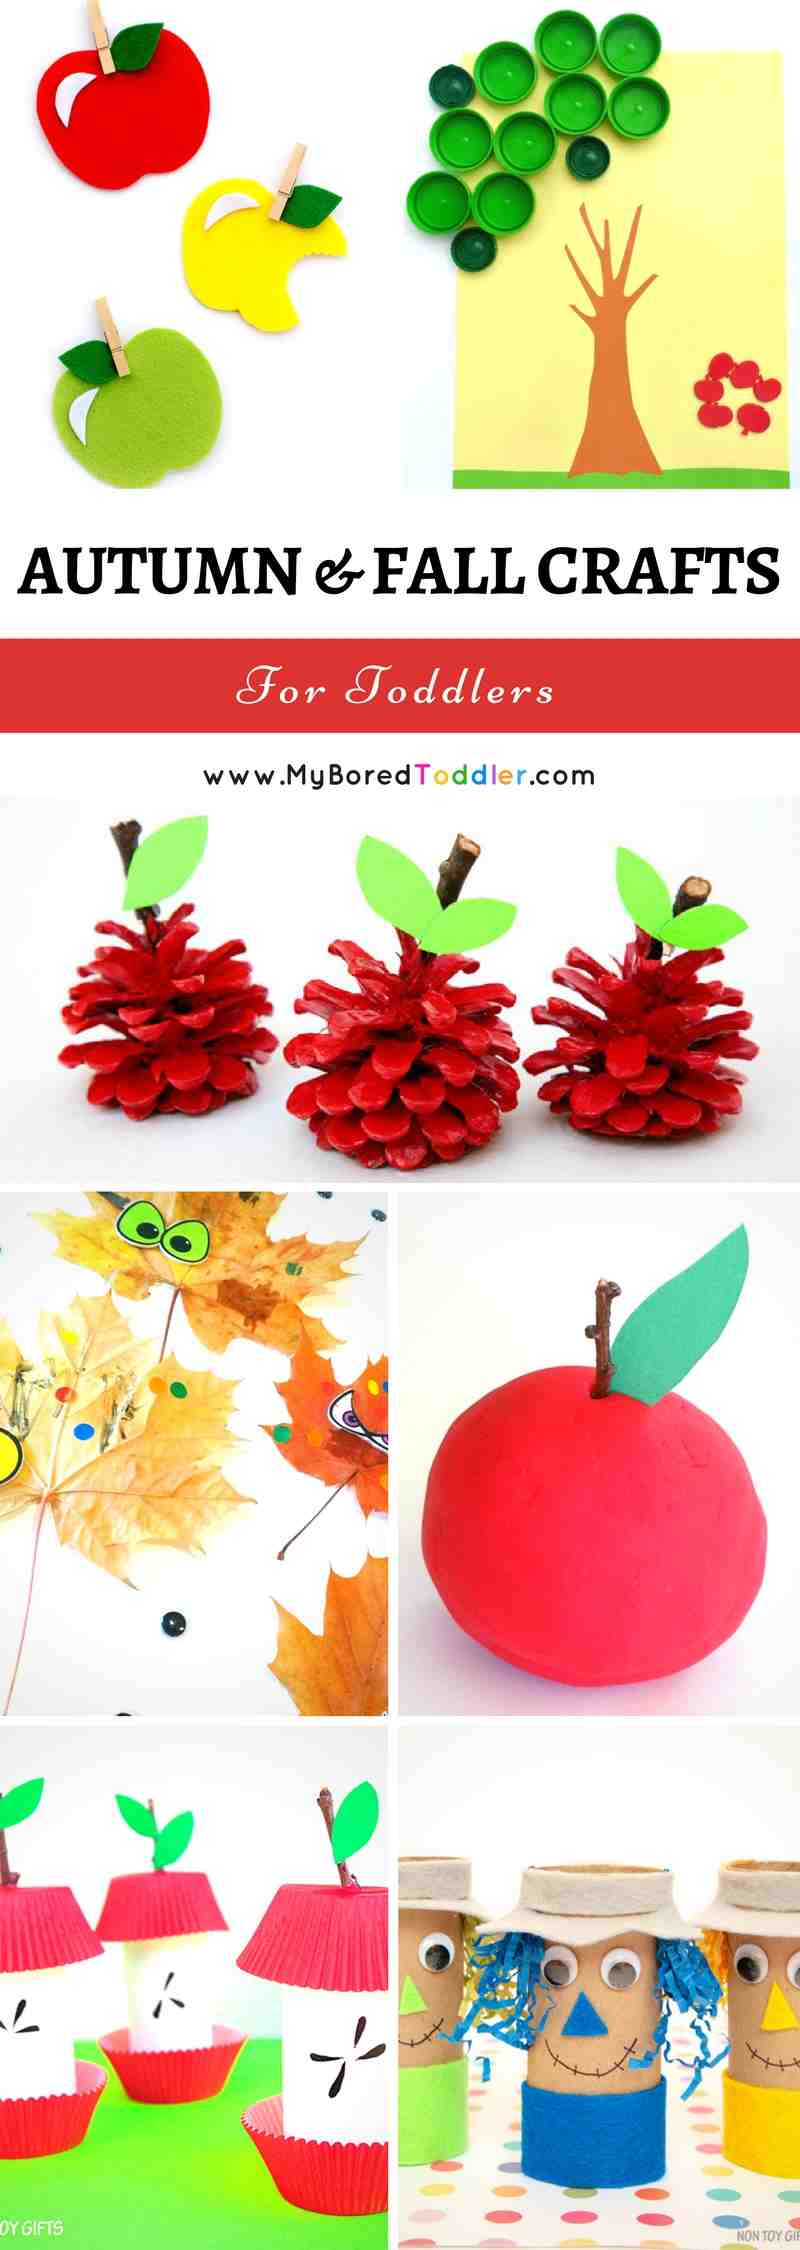 Fall Crafts For Toddlers Fun Autumn And Fall Themed Crafts